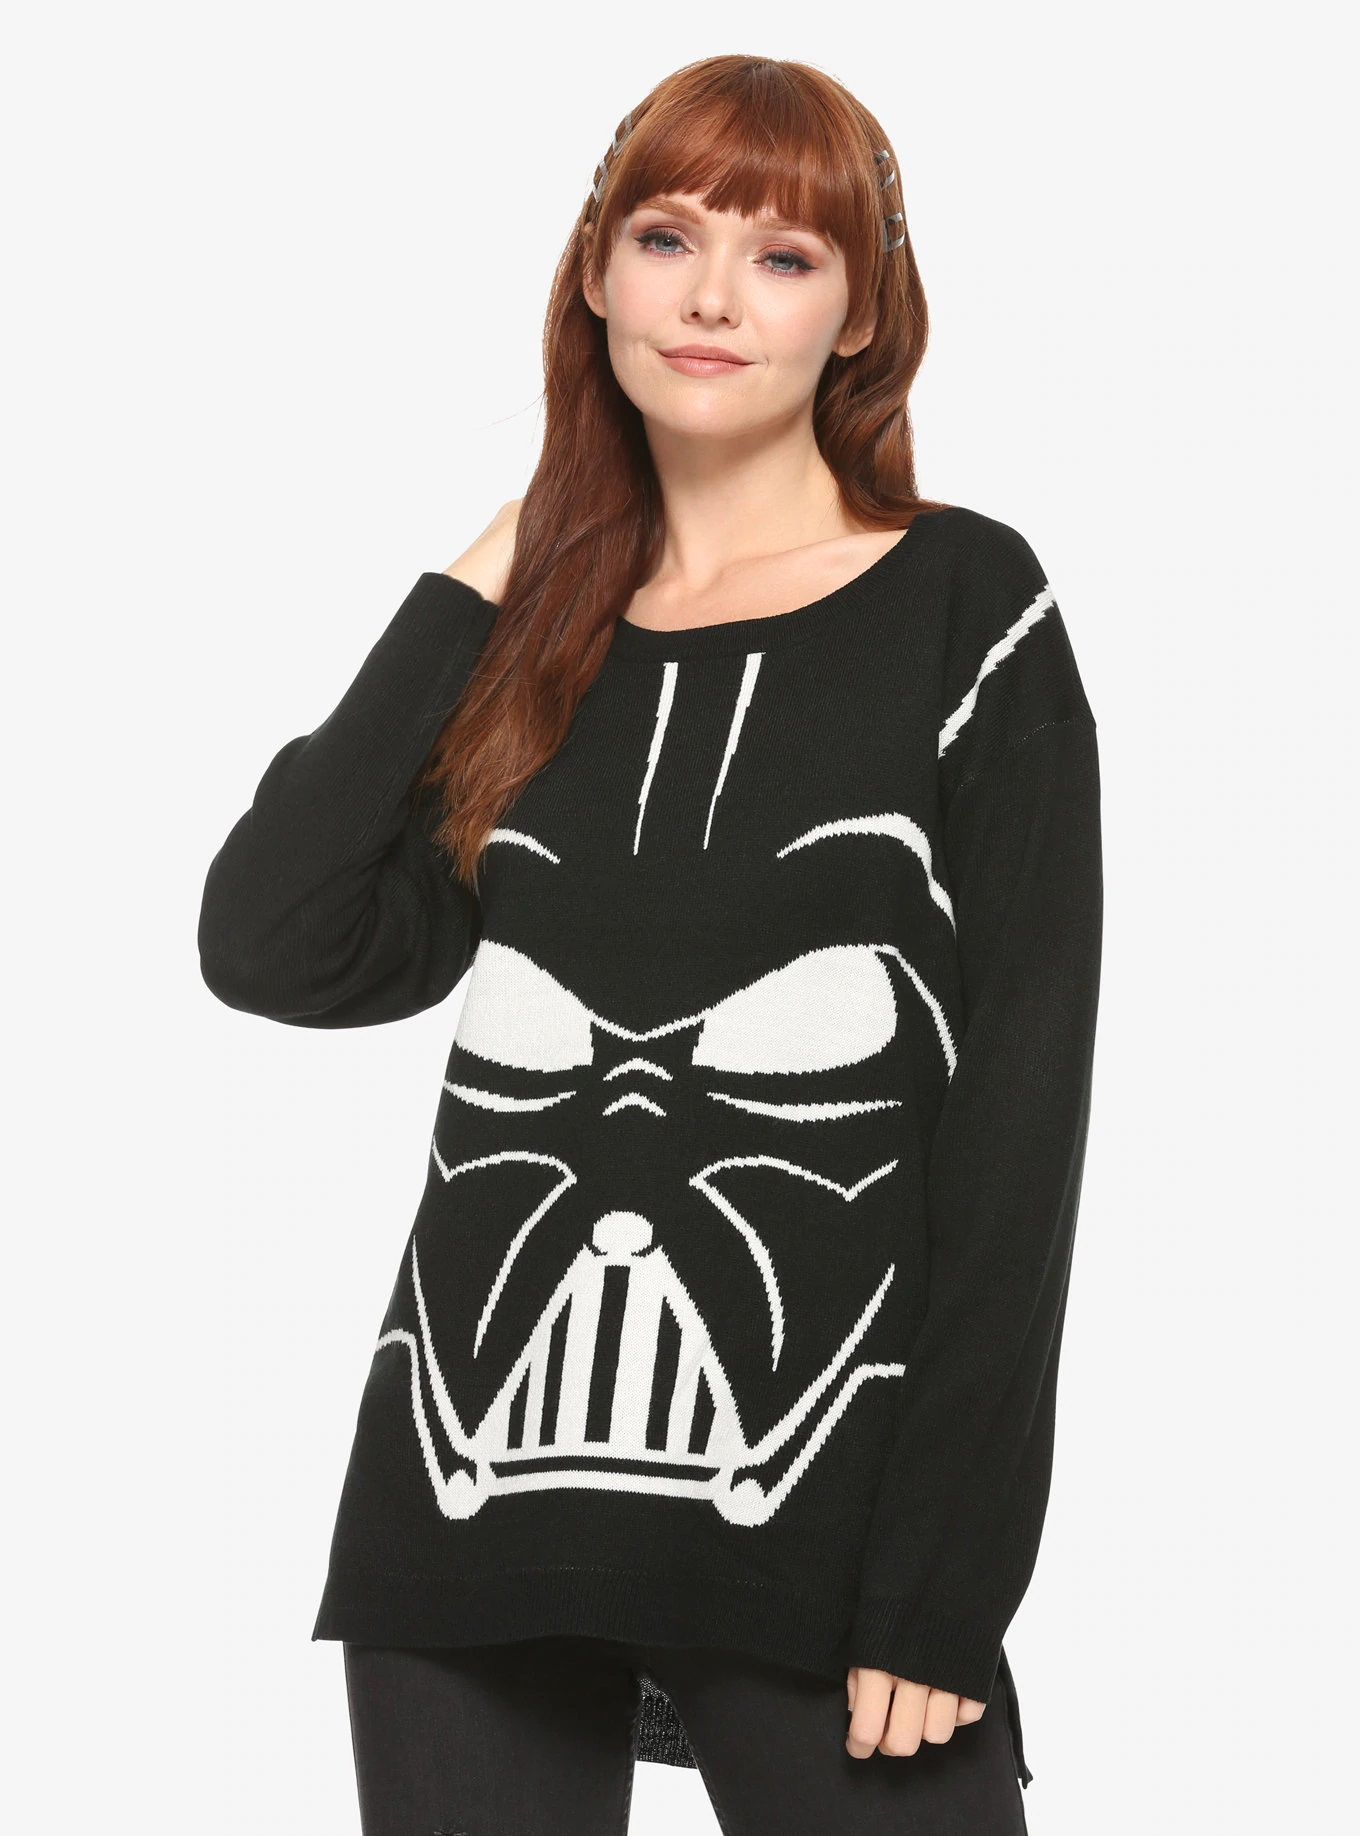 Women's Her Universe x Star Wars Darth Vader Sweater at Hot Topic